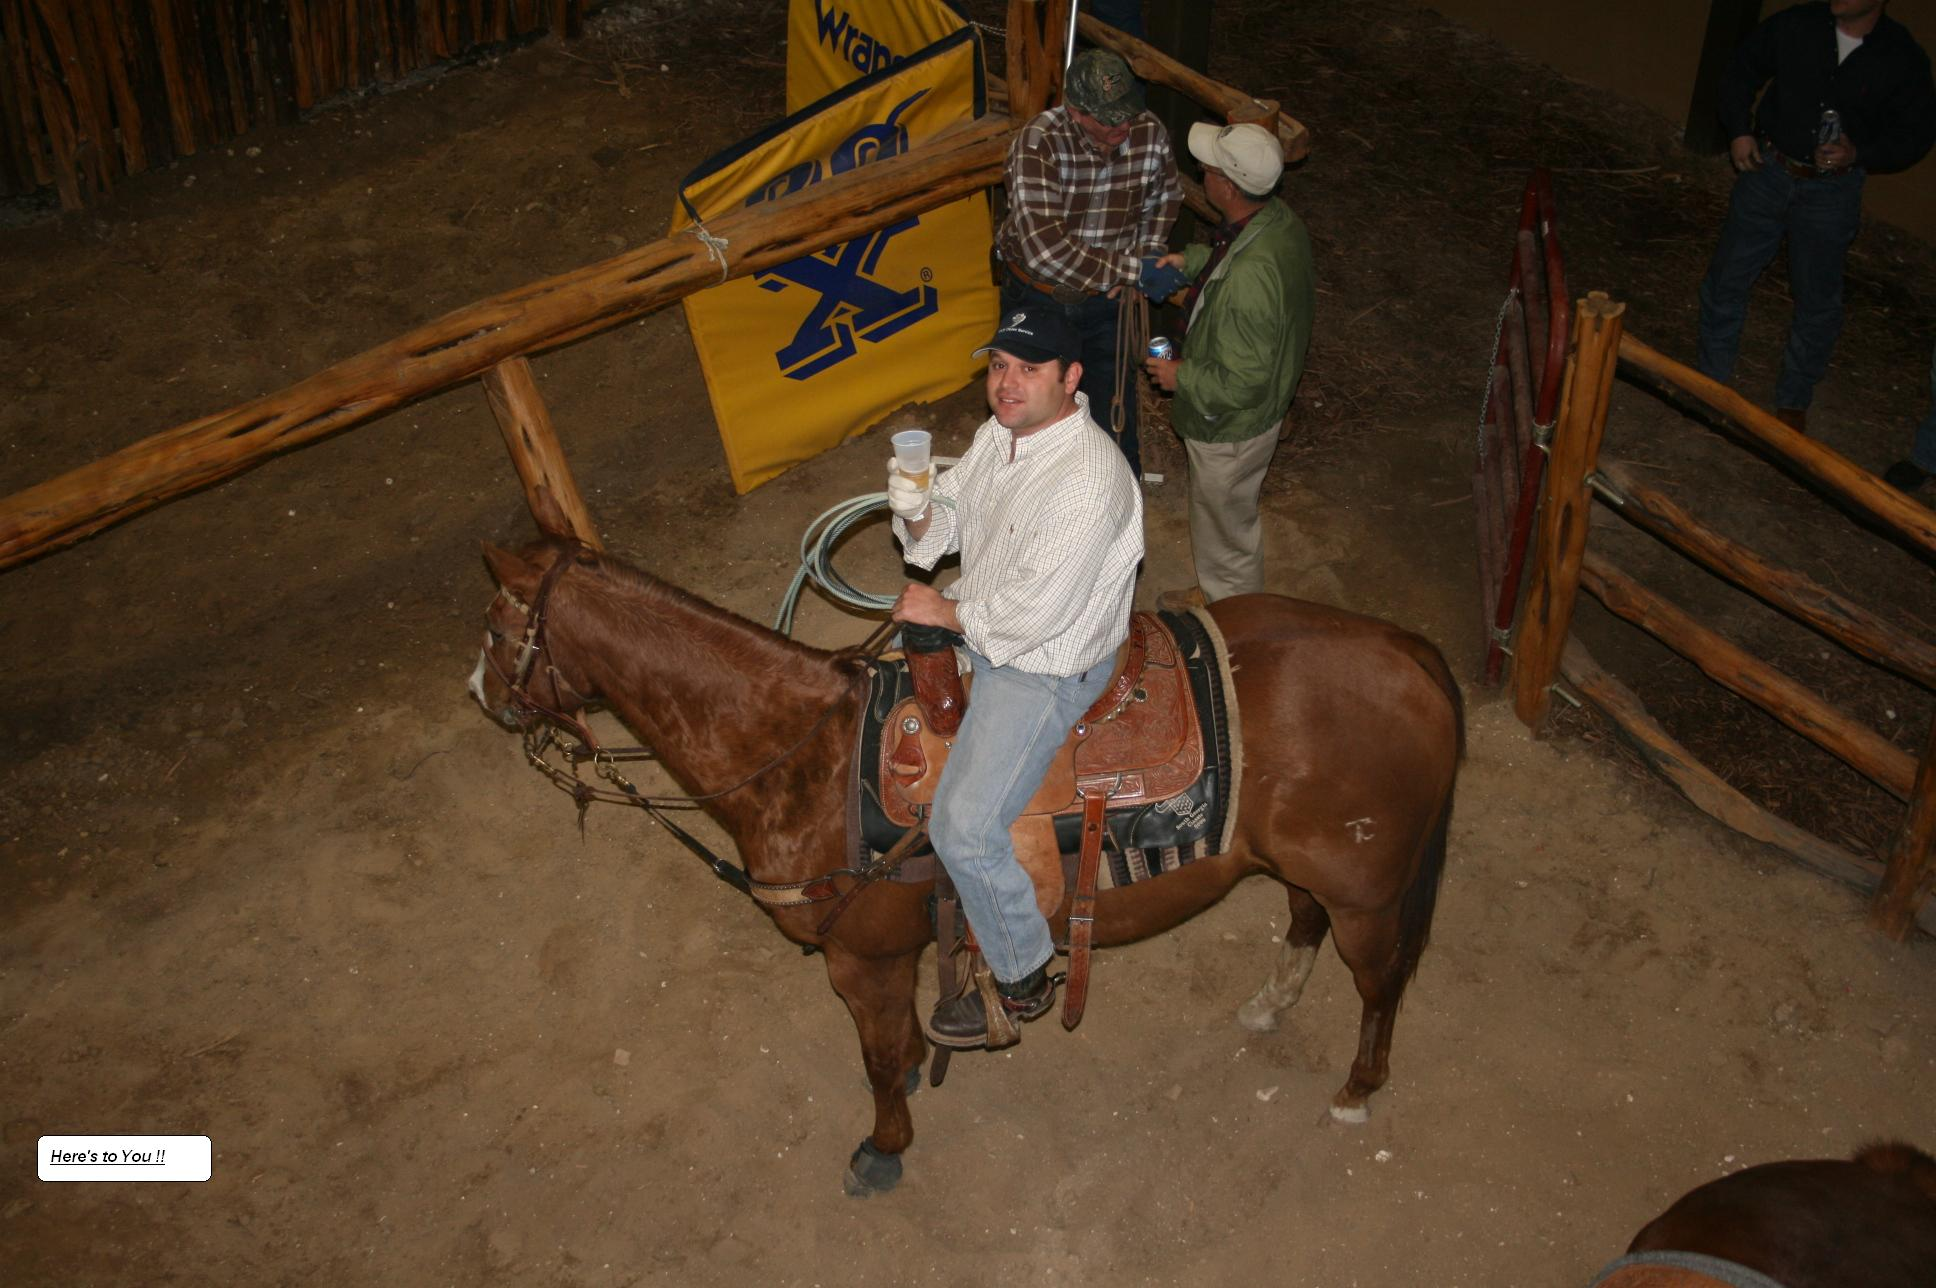 http://store.zcubes.com/C49CEADC5B984C1EAA8AC4996A38595D/Uploaded/Allcat%20Team%20Roping_1969.JPG